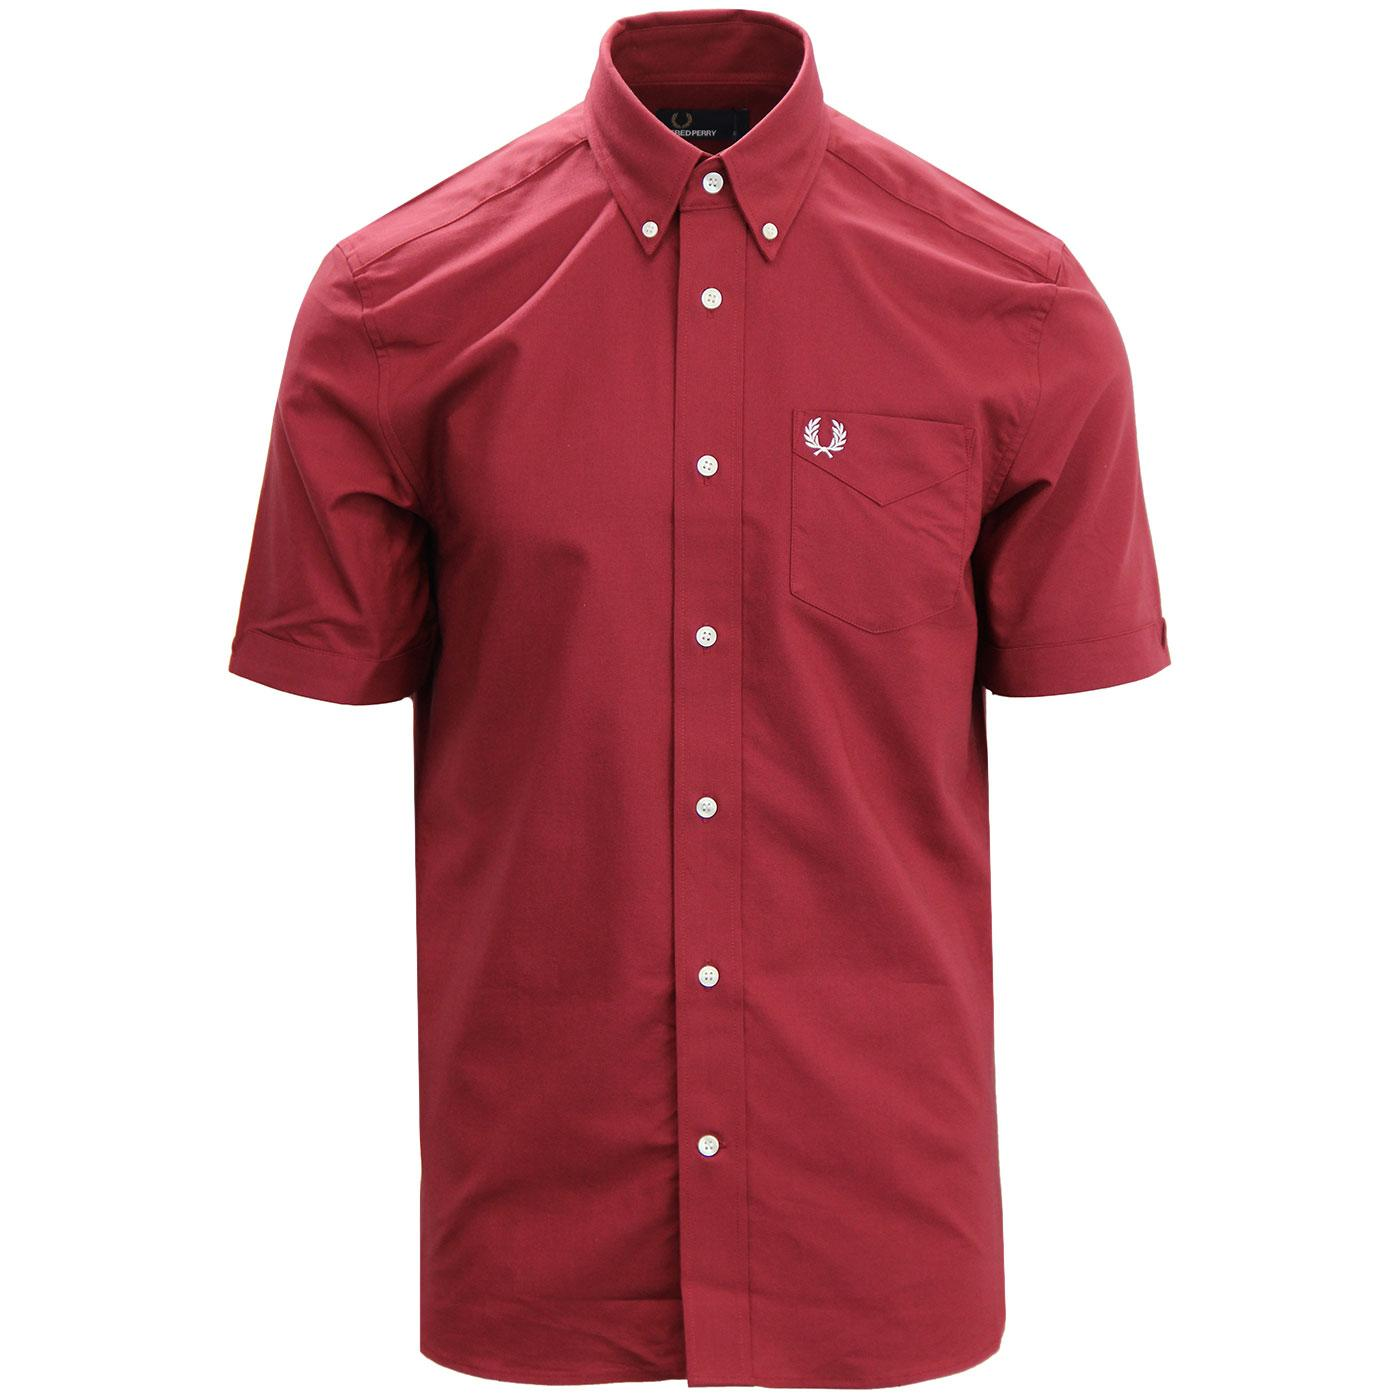 FRED PERRY Retro Mod Classic Oxford Shirt MAROON